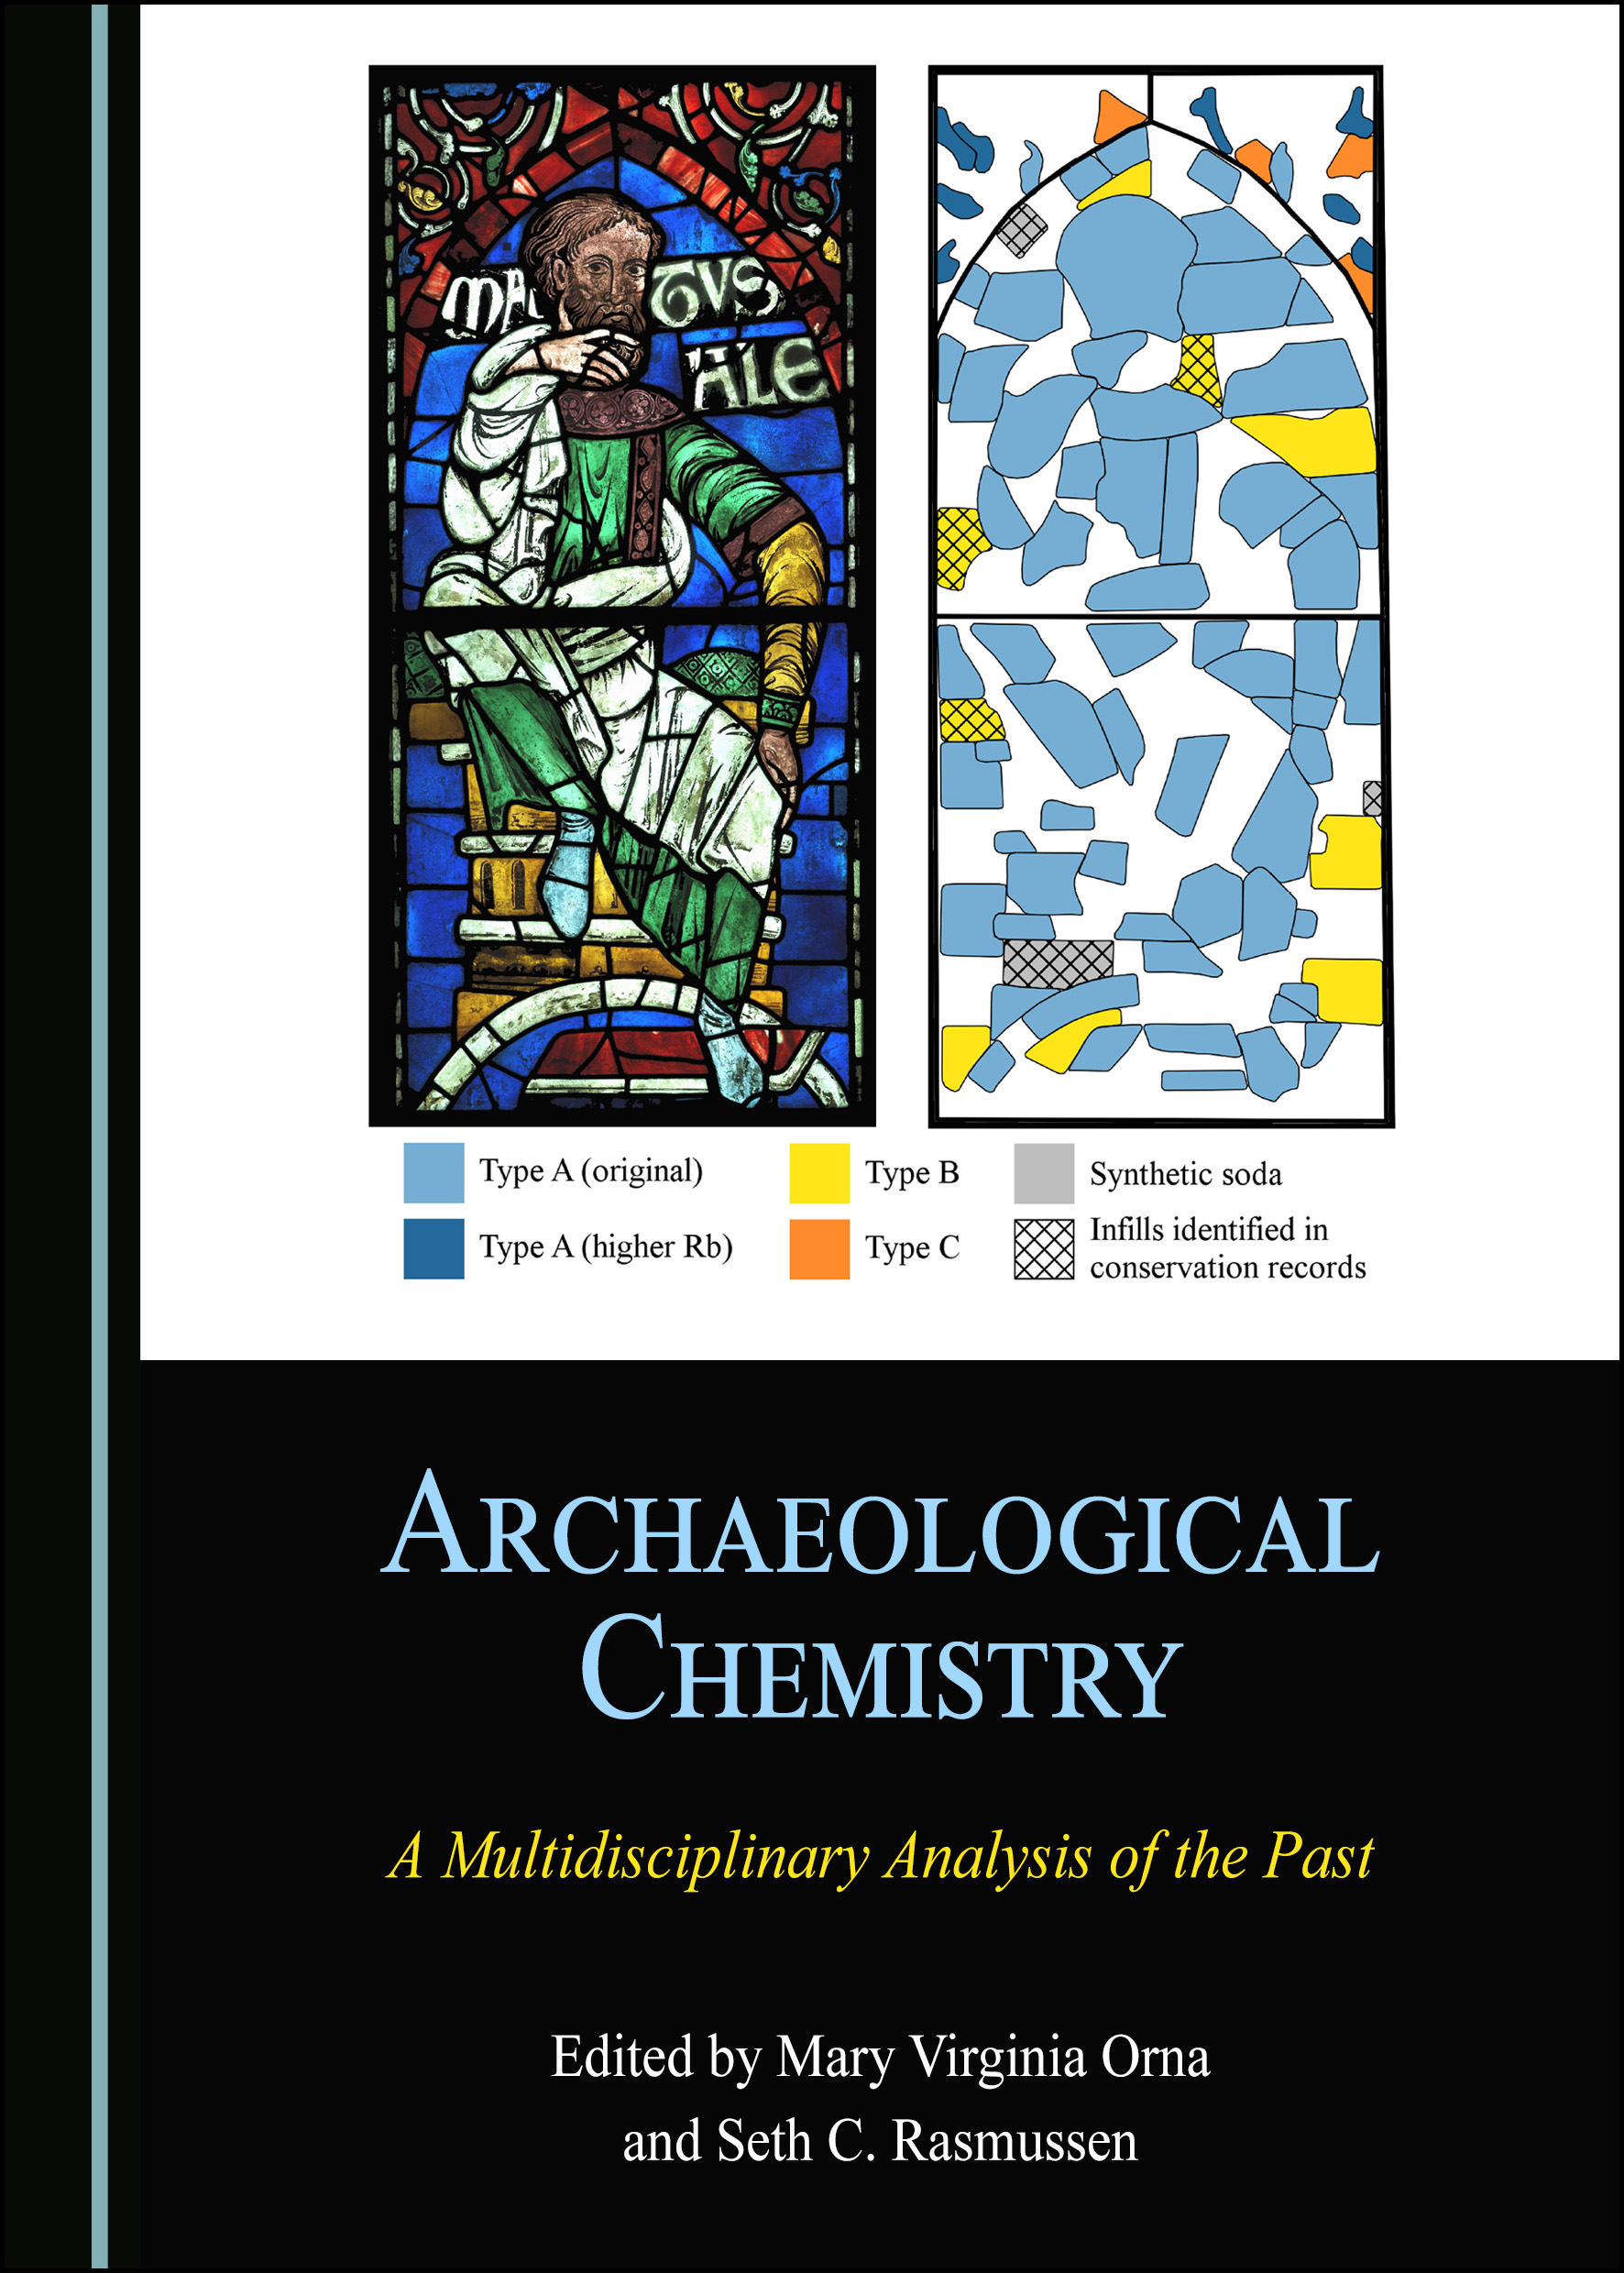 Archaeological Chemistry: A Multidisciplinary Analysis of the Past